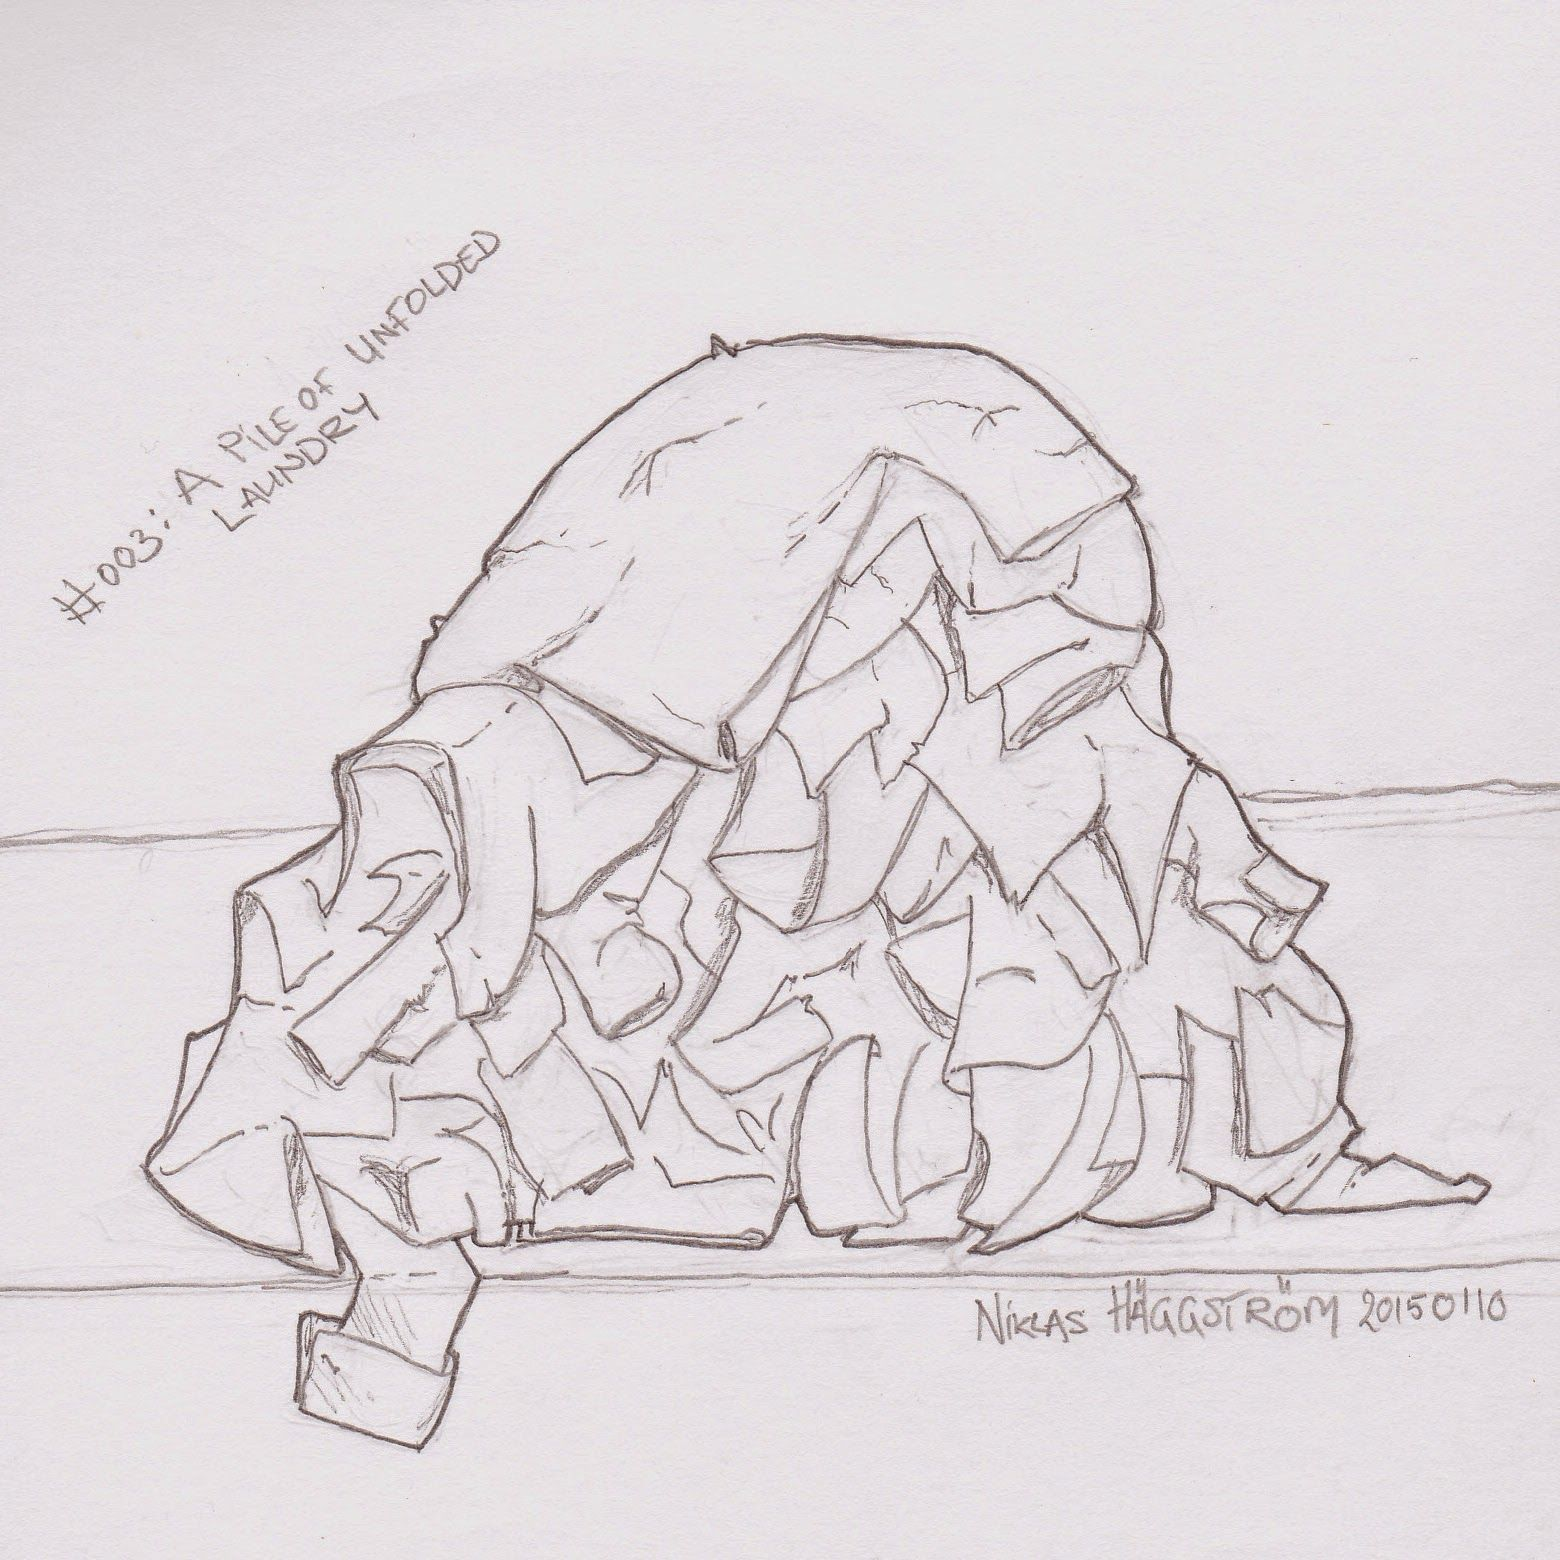 A Programmer S Guide To Tooning Challenge 003 A Pile Of Unfolded Laundry Drawing Sketching Challenge Laundry Laundry Art Sketch Book Drawing Challenge